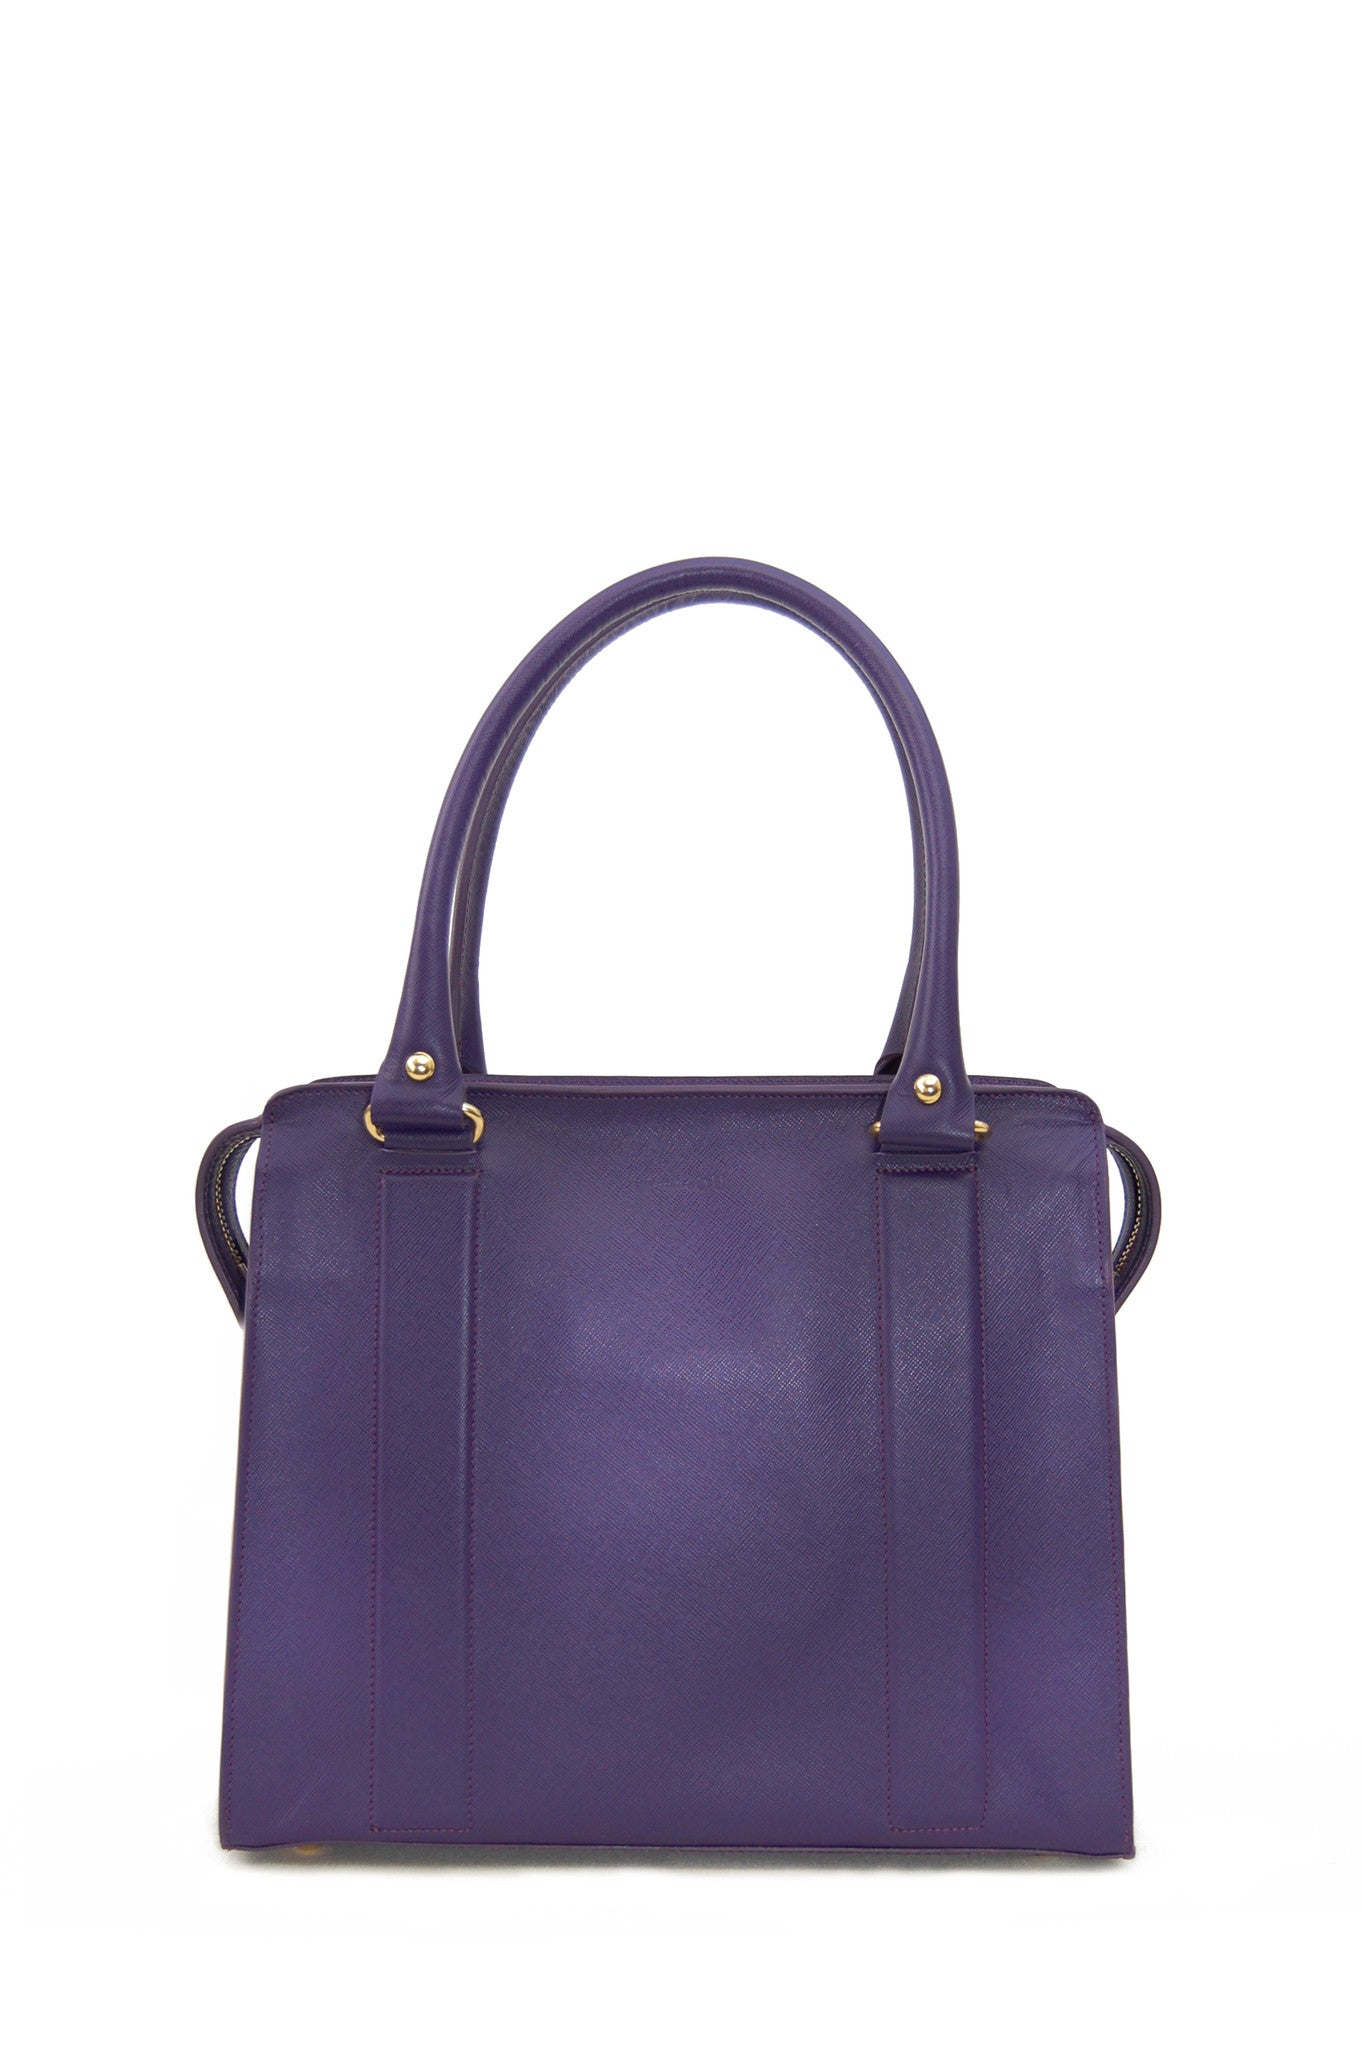 Wendee Ou: Middleton structured bag purple | Bags > Handbags,Bags,Bags > Shoulder Bags -  Hiphunters Shop